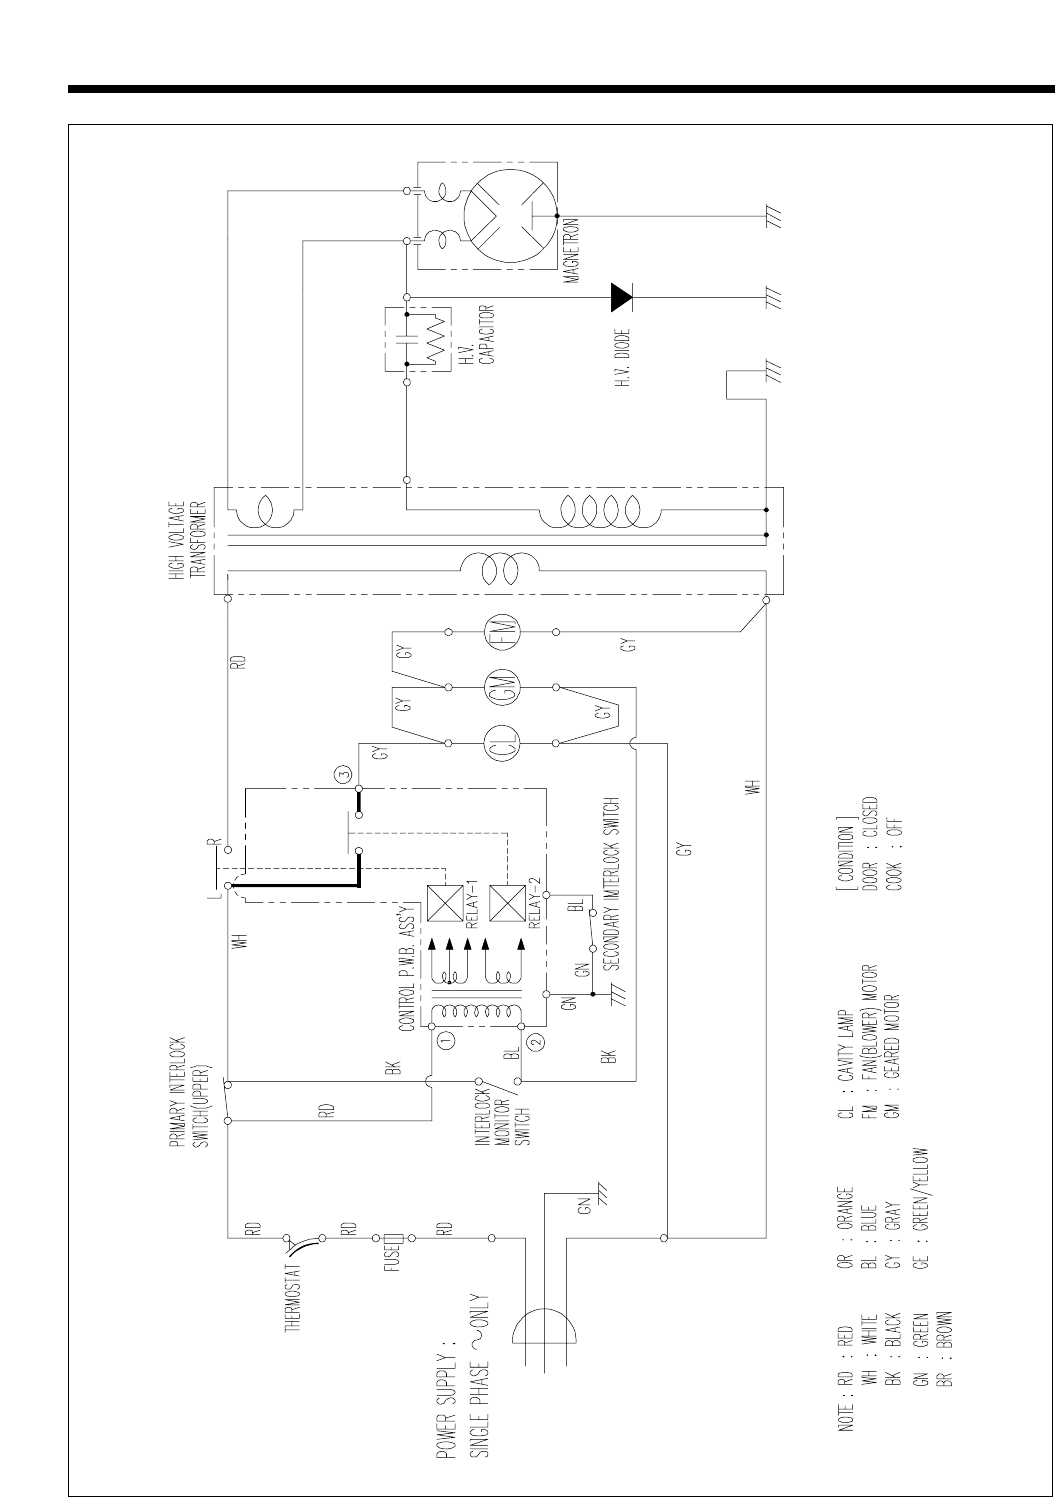 page 26 of daewoo microwave oven kor